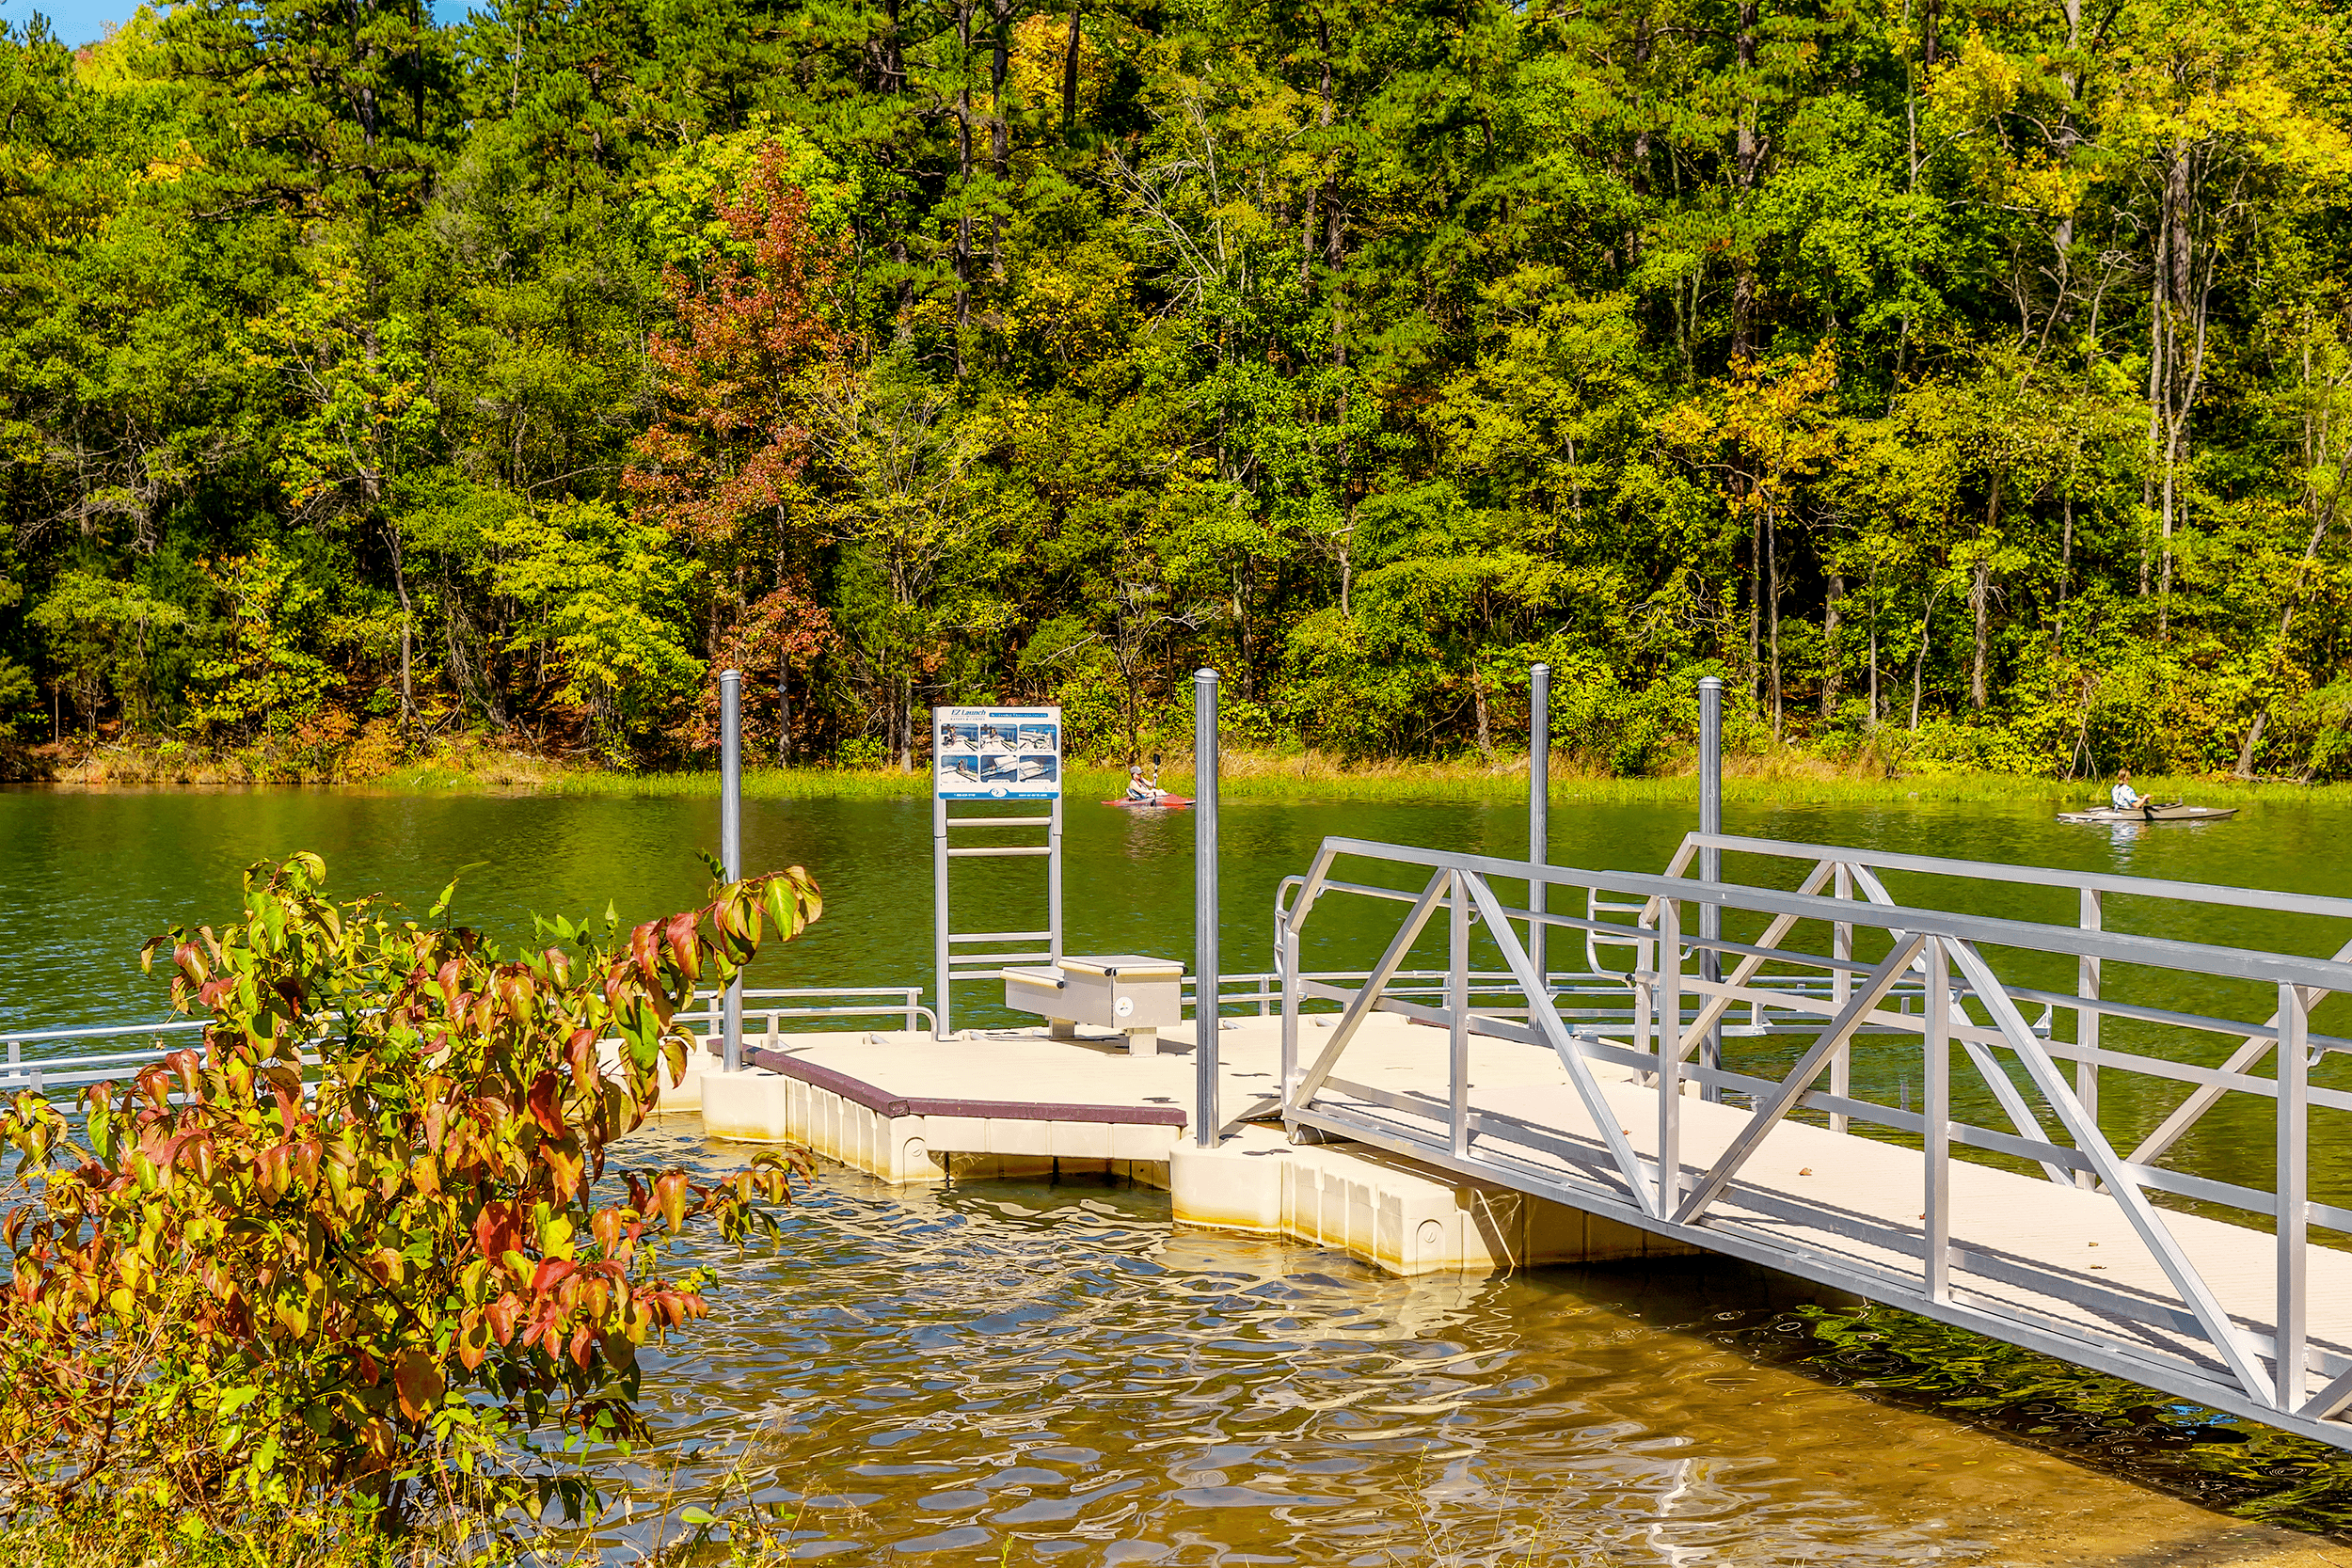 The northern Canoe Launch for  Mountain Island Lake  is a perfect place to launch your canoe for a peaceful paddle. Limited car parking is available.